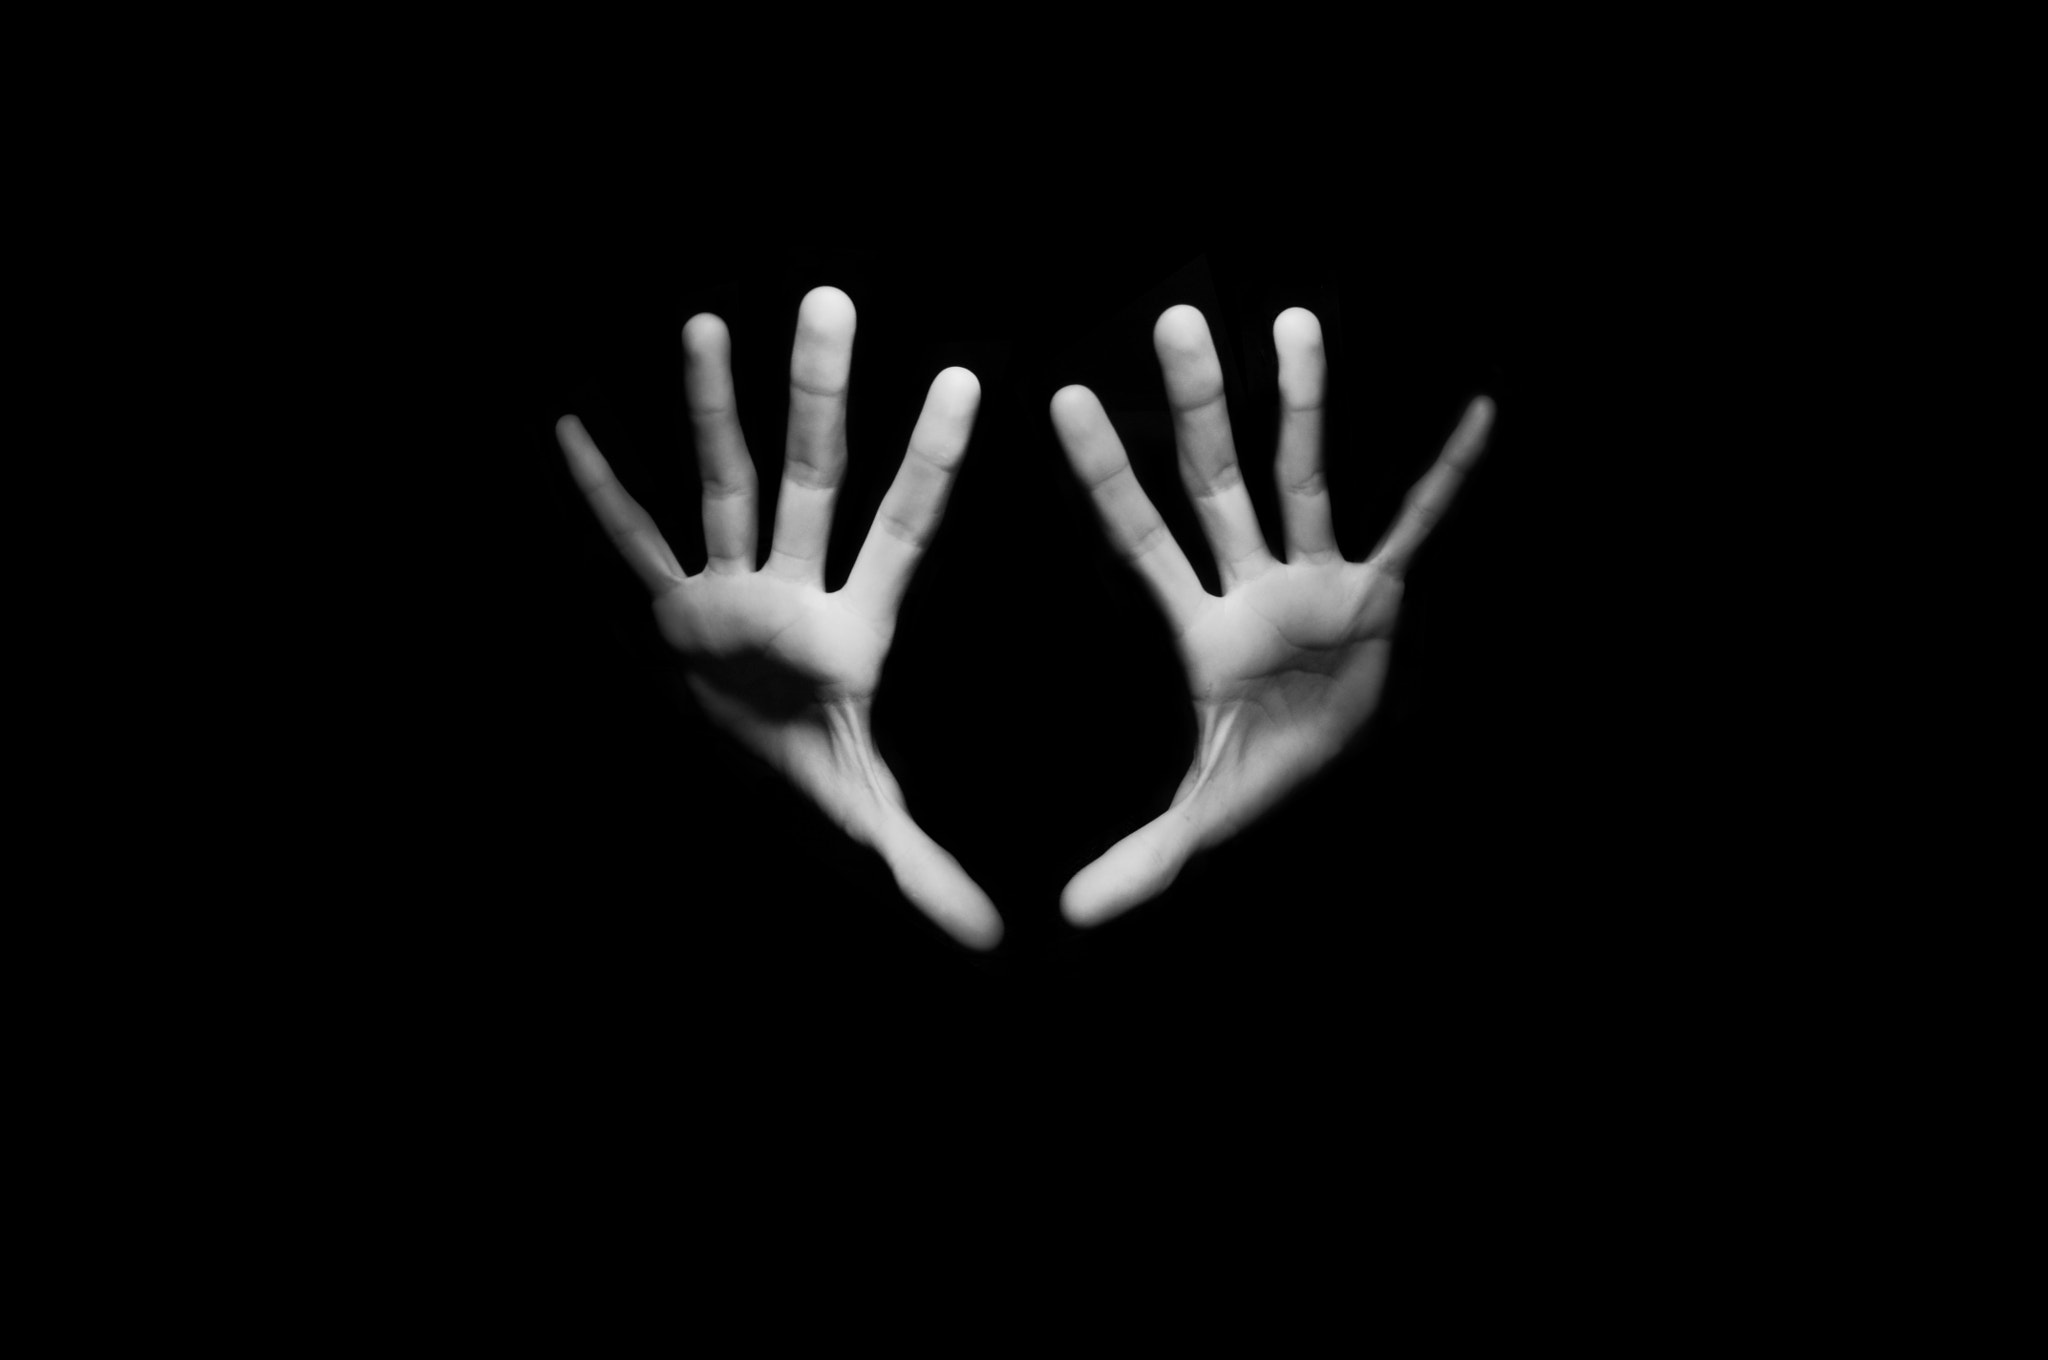 Photograph Hands by Kieran Doherty on 500px